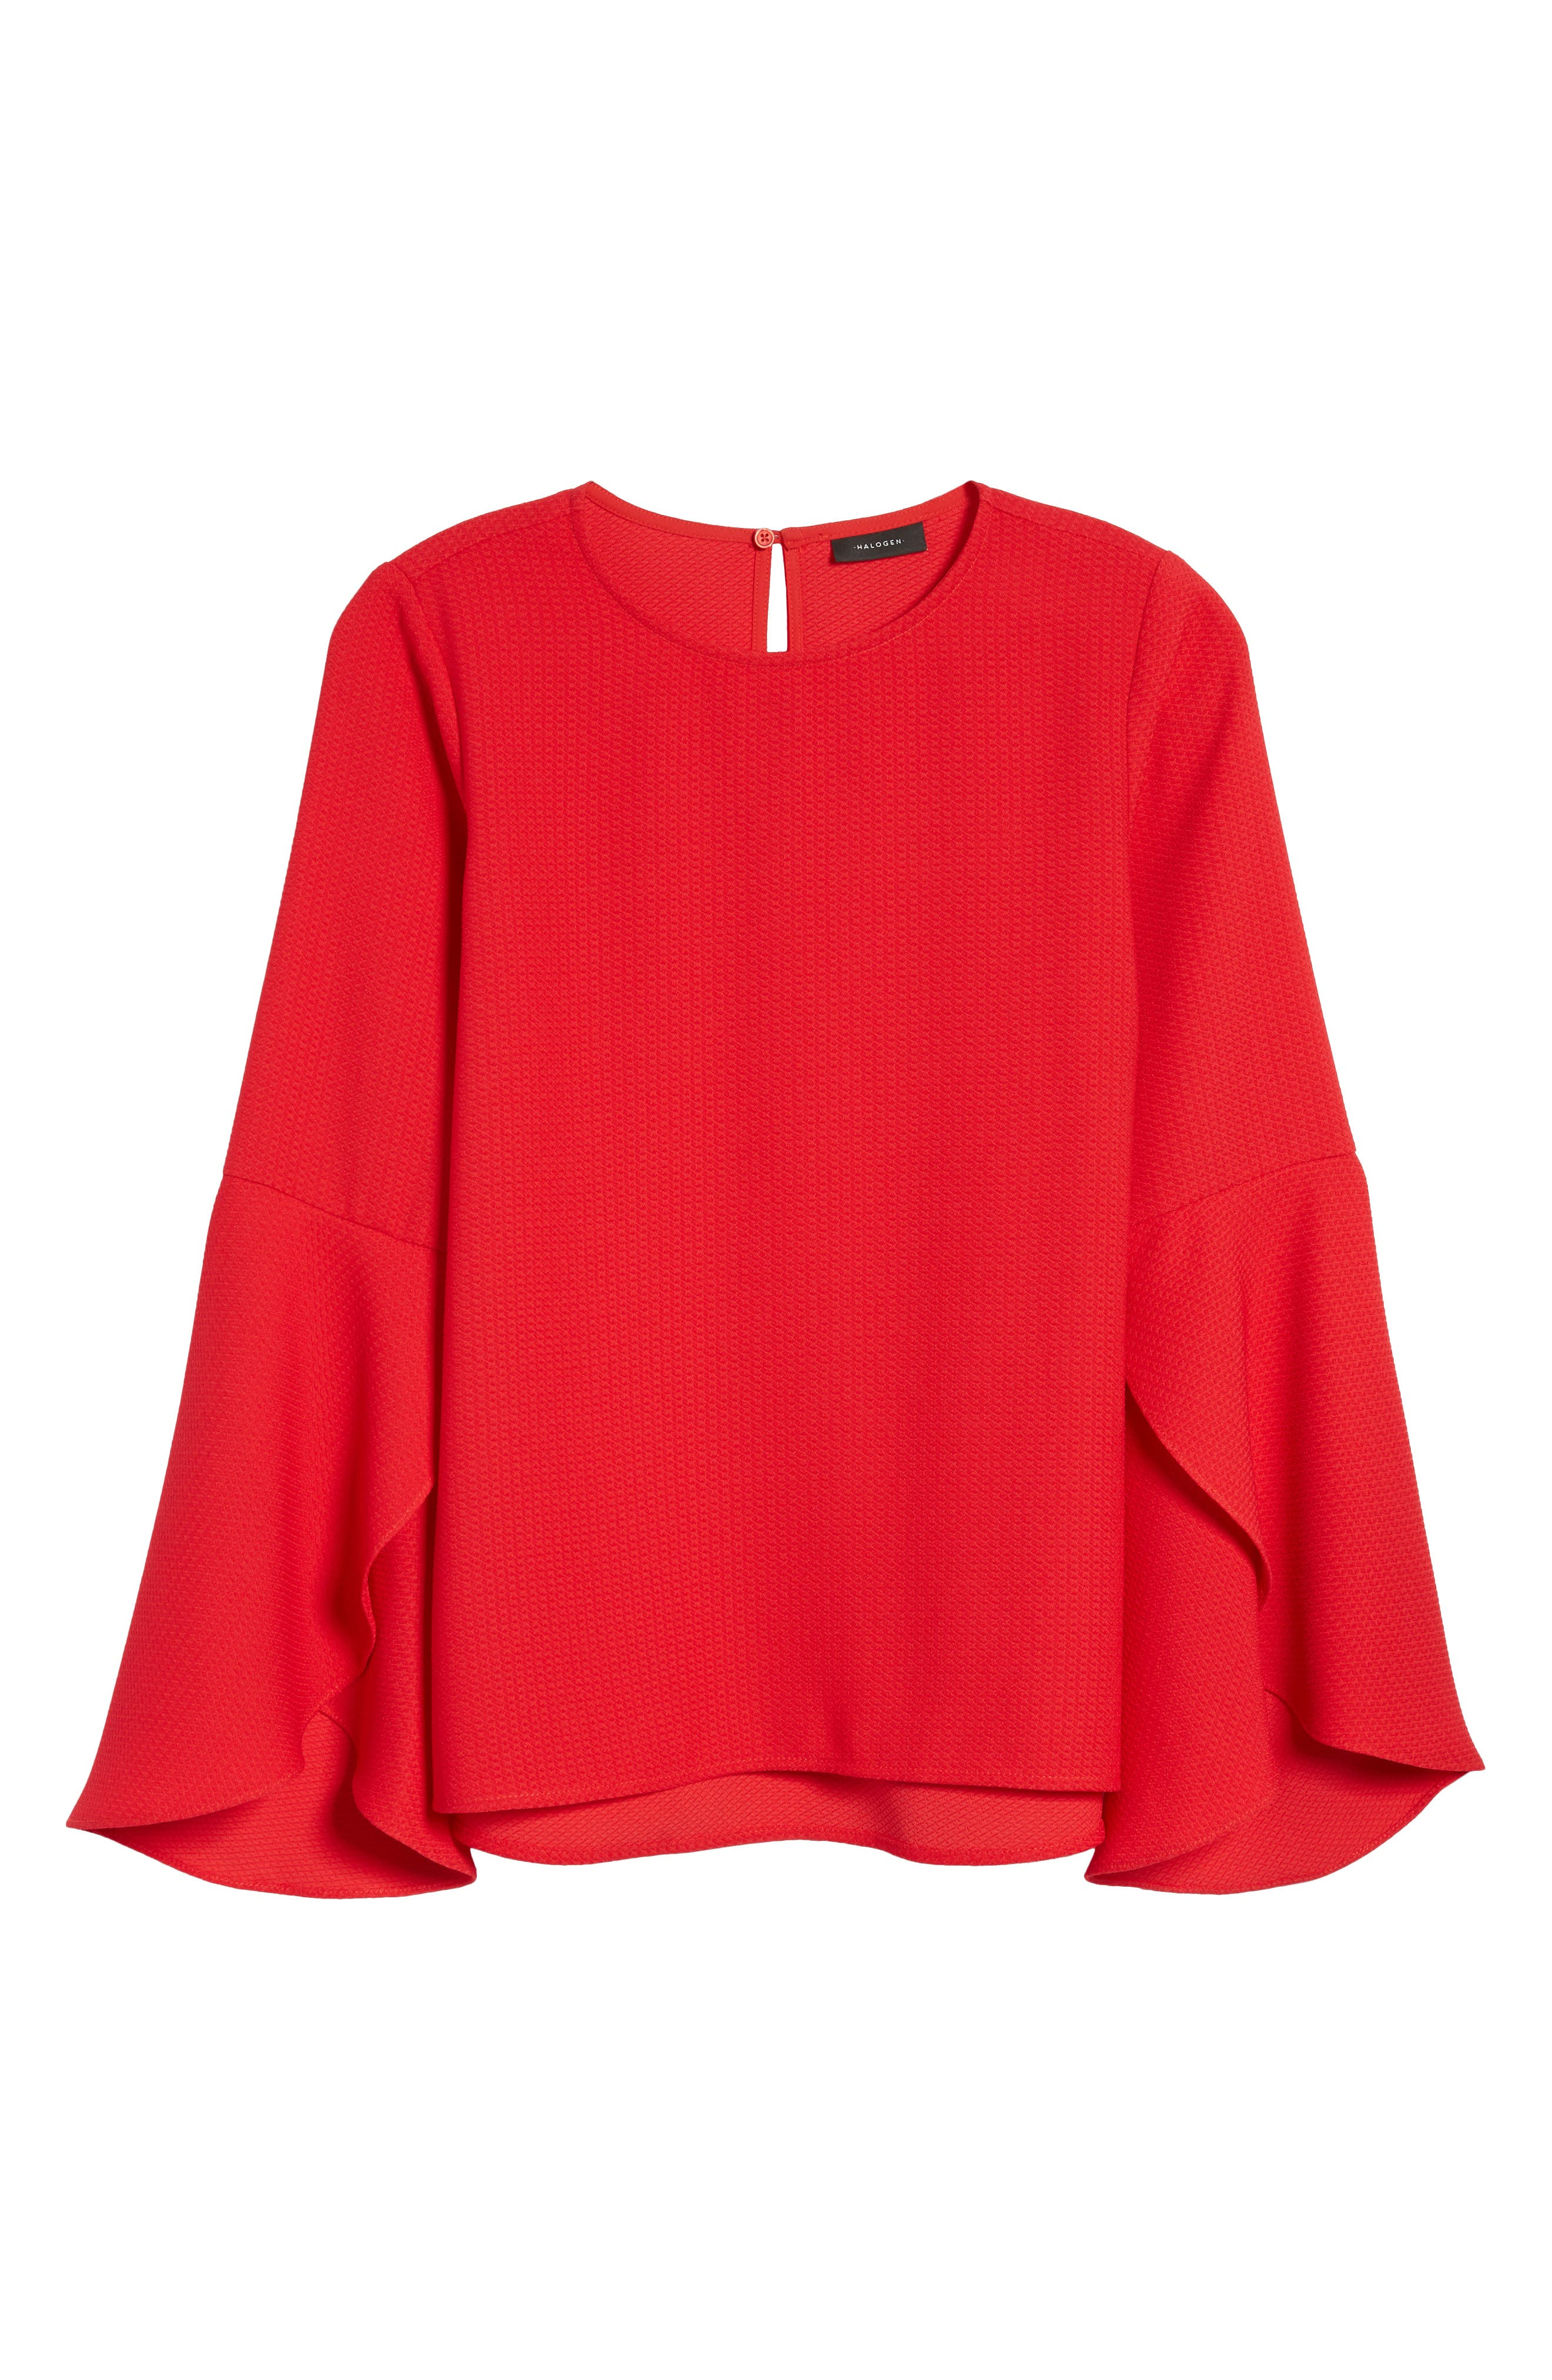 Bell Sleeve Top,                             Alternate thumbnail 6, color,                             Red Pepper